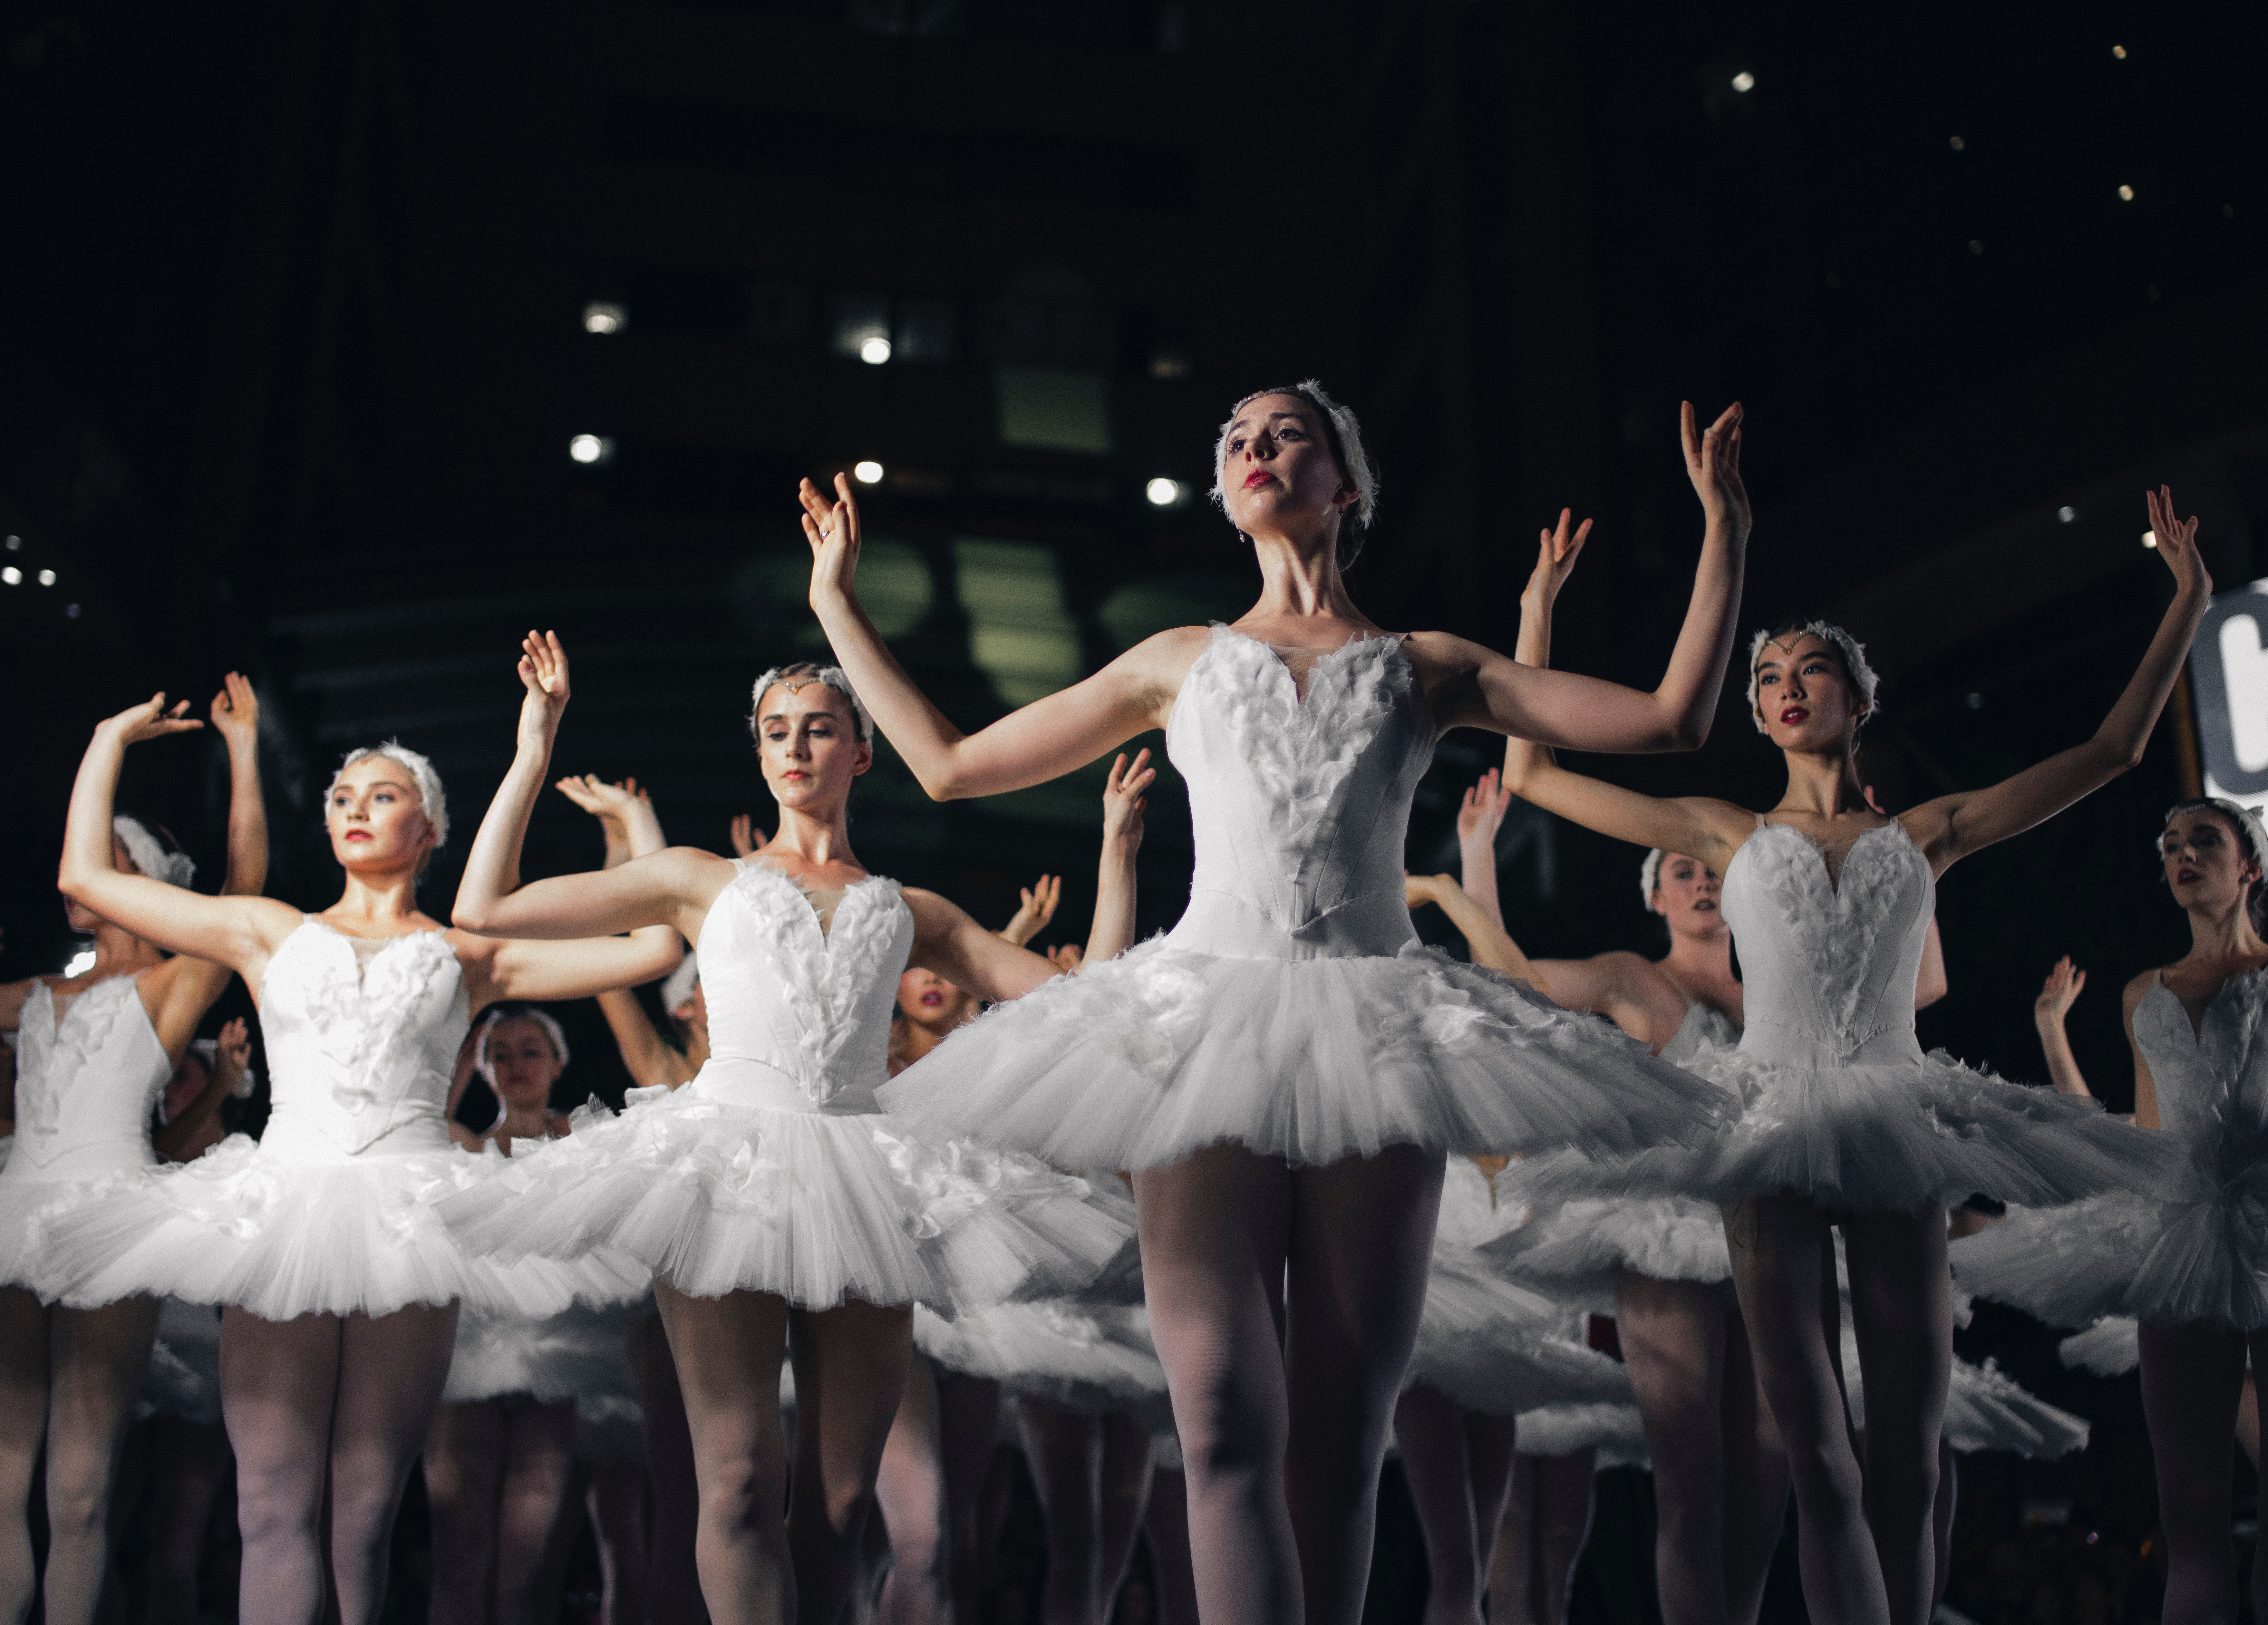 How To Launch a Dance Career Without Going Broke